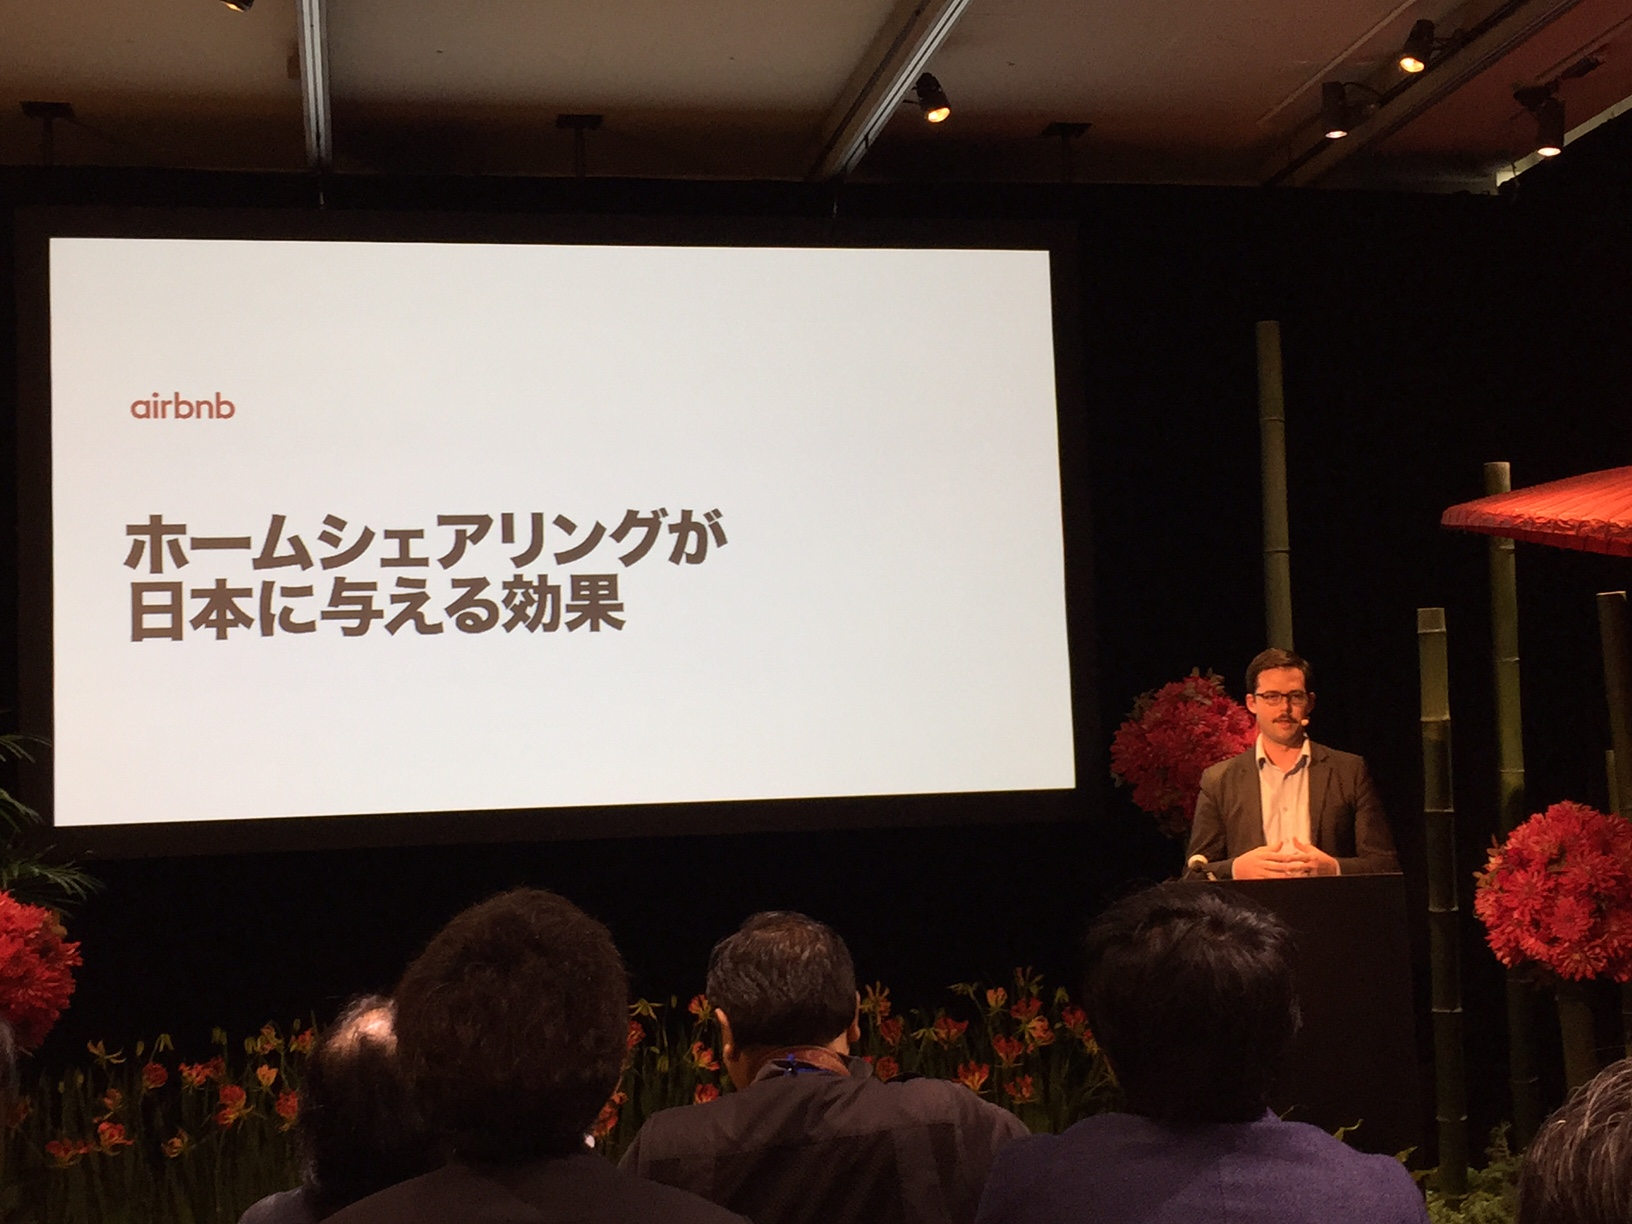 What is the breakdown of an Airbnb's bringing economic effect of 220 billion JPY in Japan?